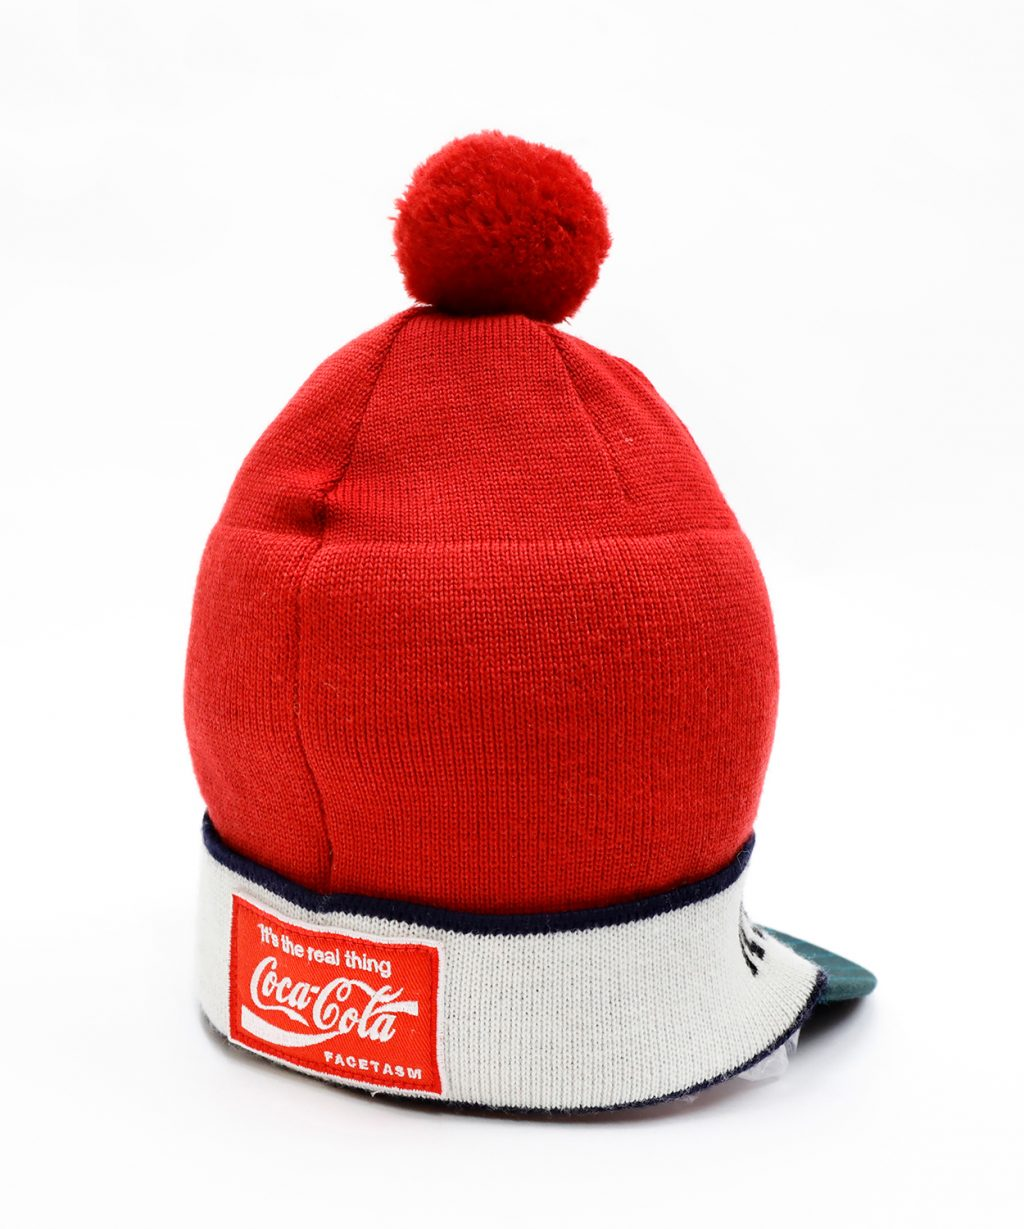 COCA-COLA-KNIT-LAYERED-CAP2-1024x1229.jpg